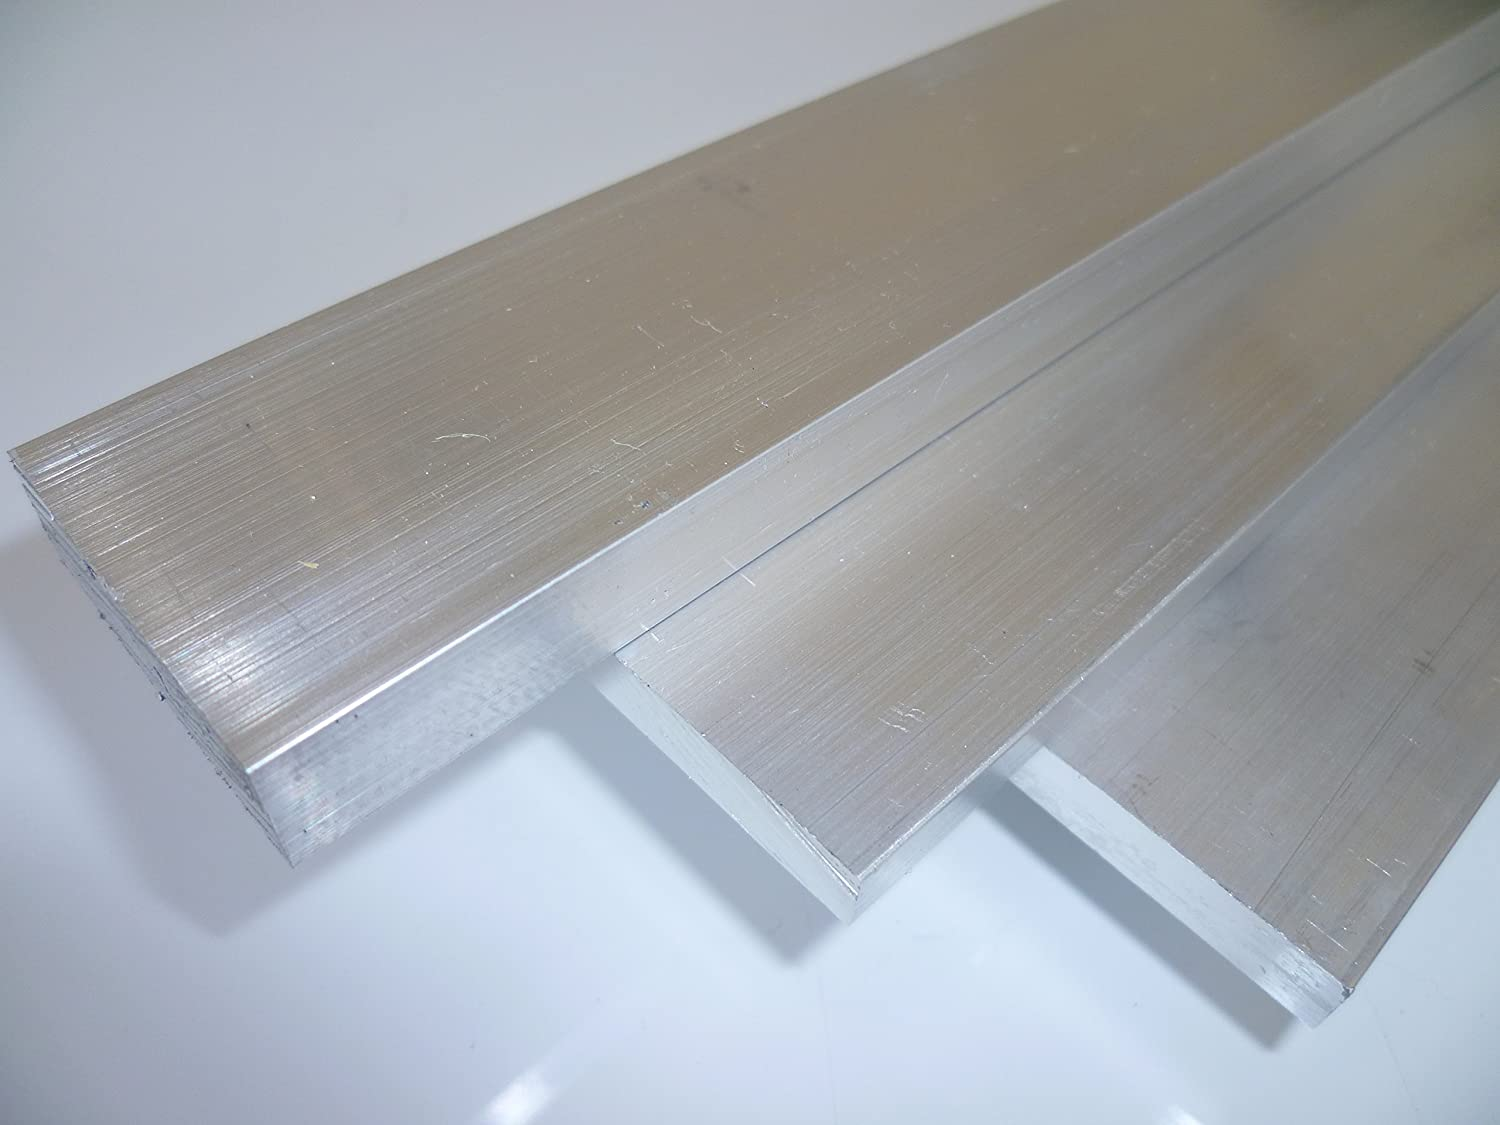 0//5/ mm B /& T Metal Aluminium Flat Bar Schweissbar Suitable for Anodising in Length Each Approx 1000/ mm